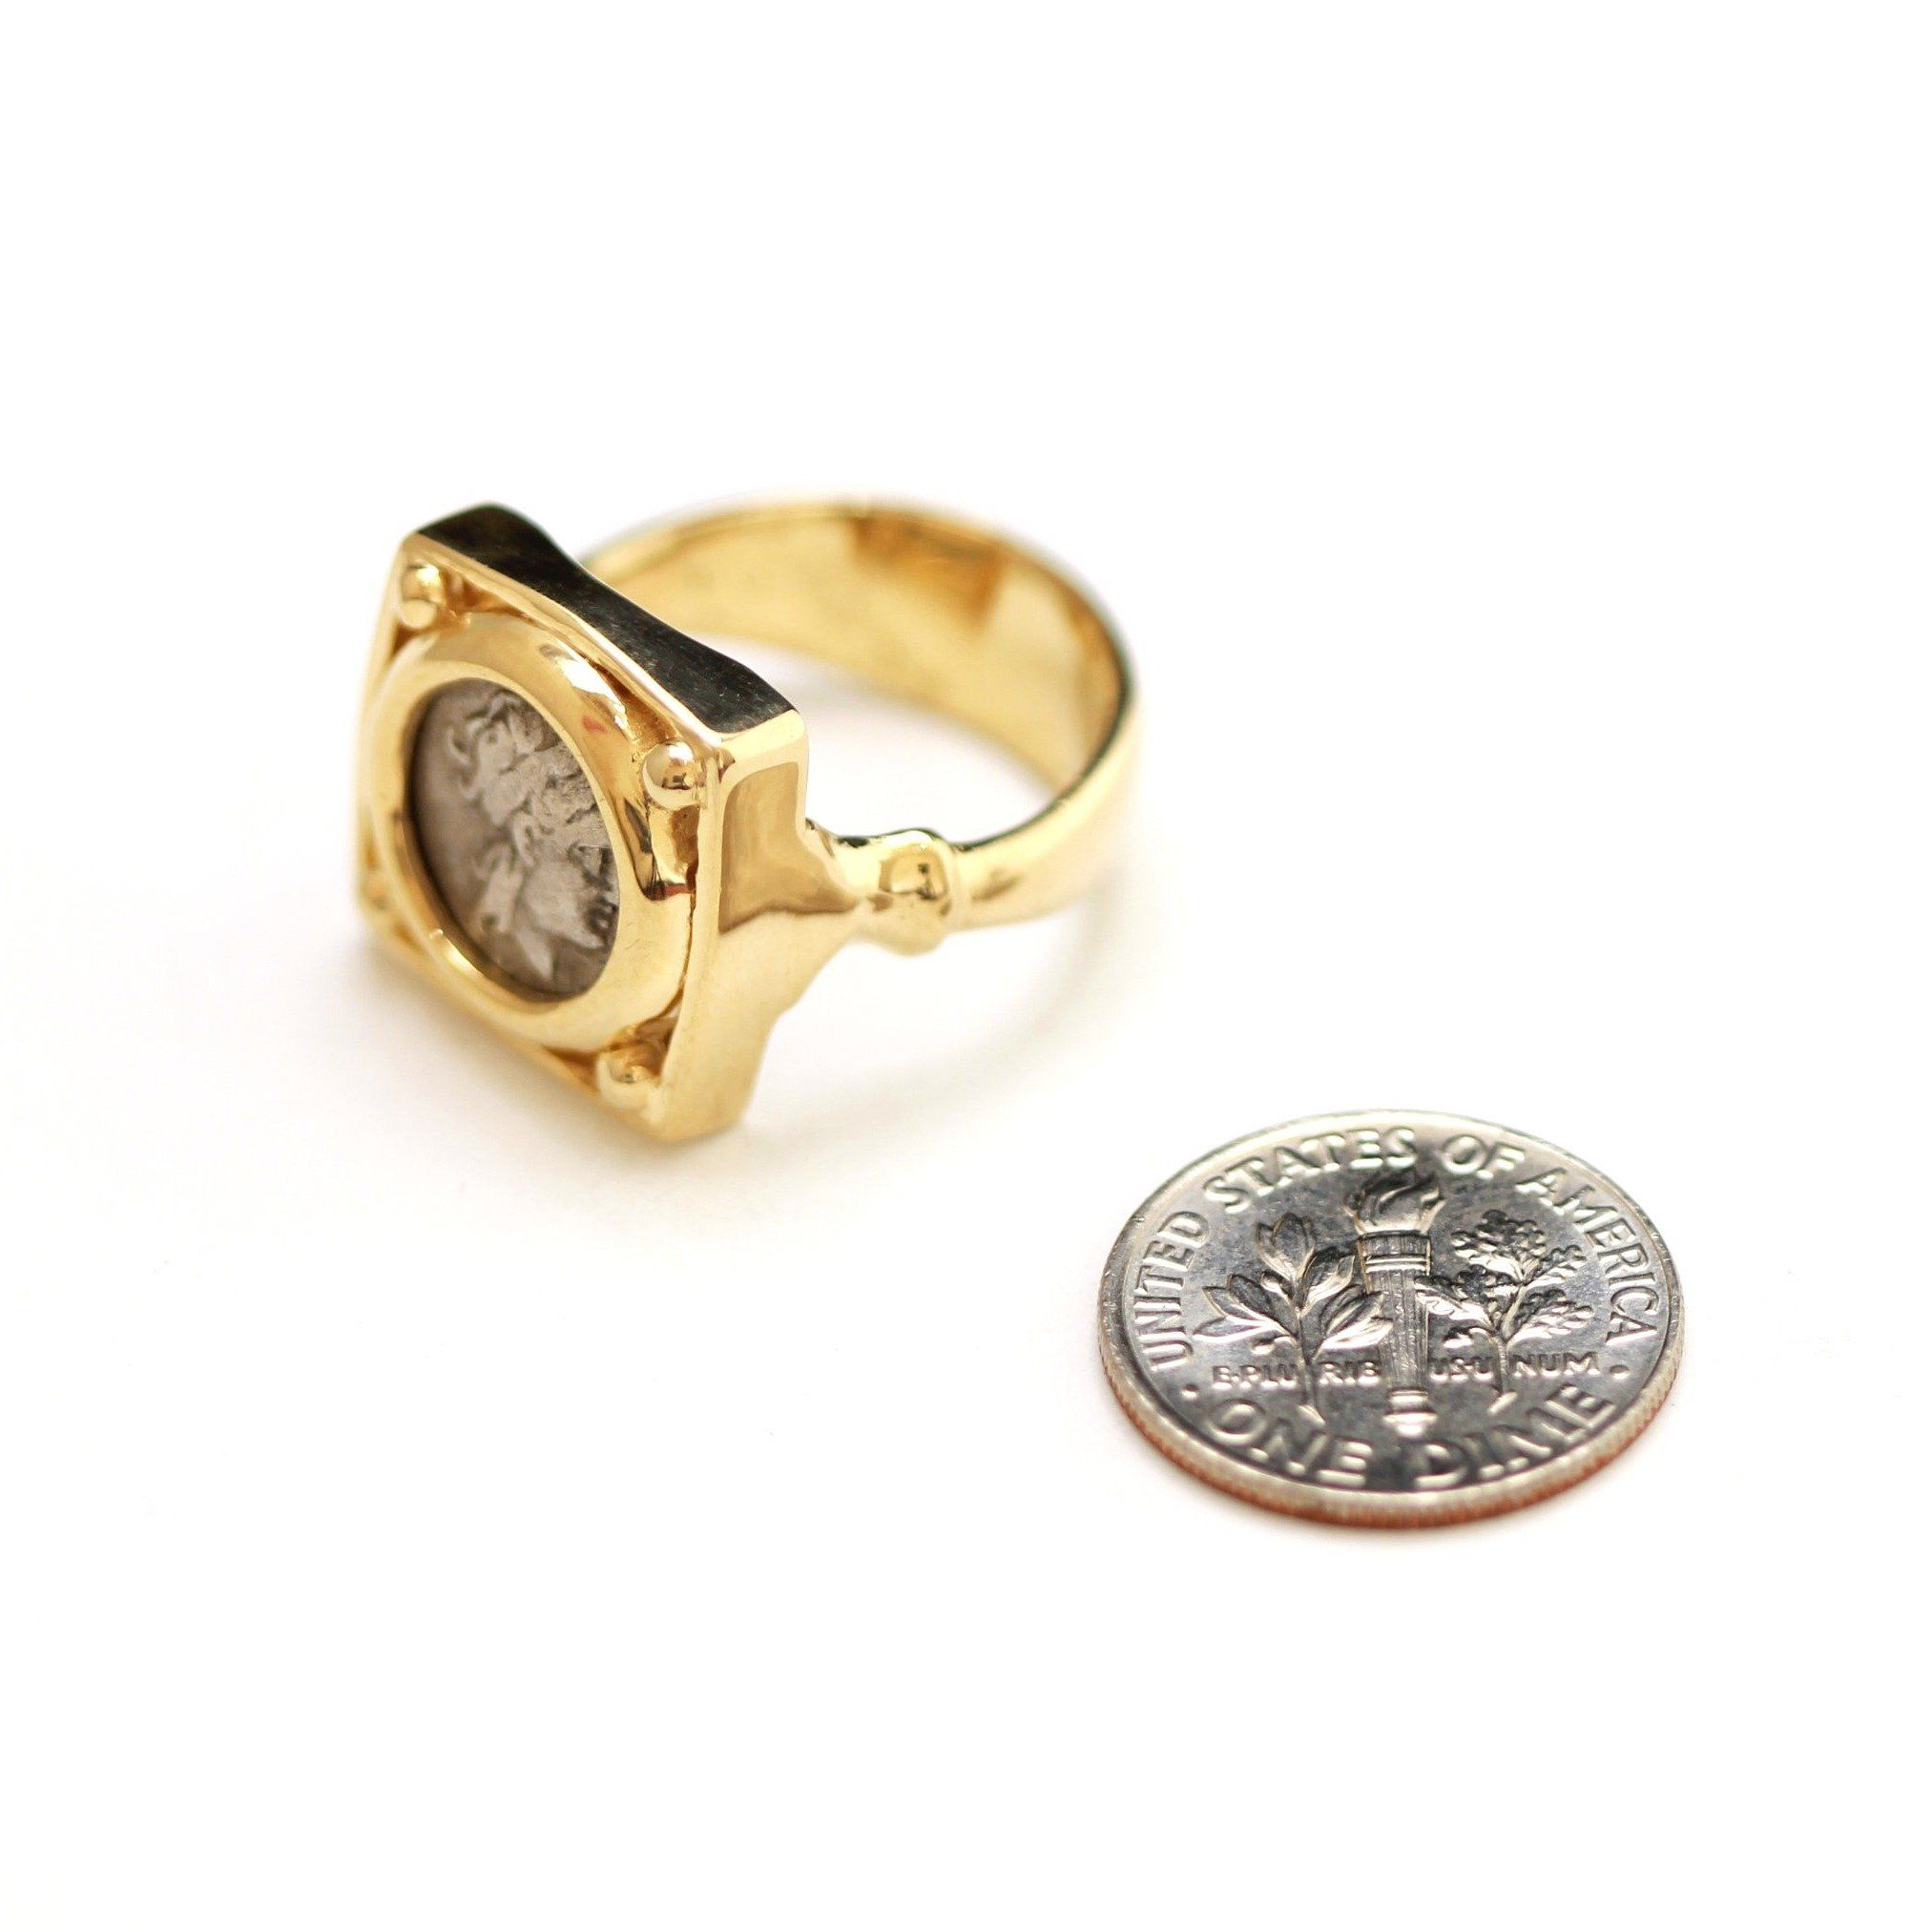 14K Square Gold Ring, Kios, Apollo, Hemidrachm Coin, ID13260 - Erez Ancient Coin Jewelry, ancient coin jewelry, men jewelry, genuine ancient coins, made in the US